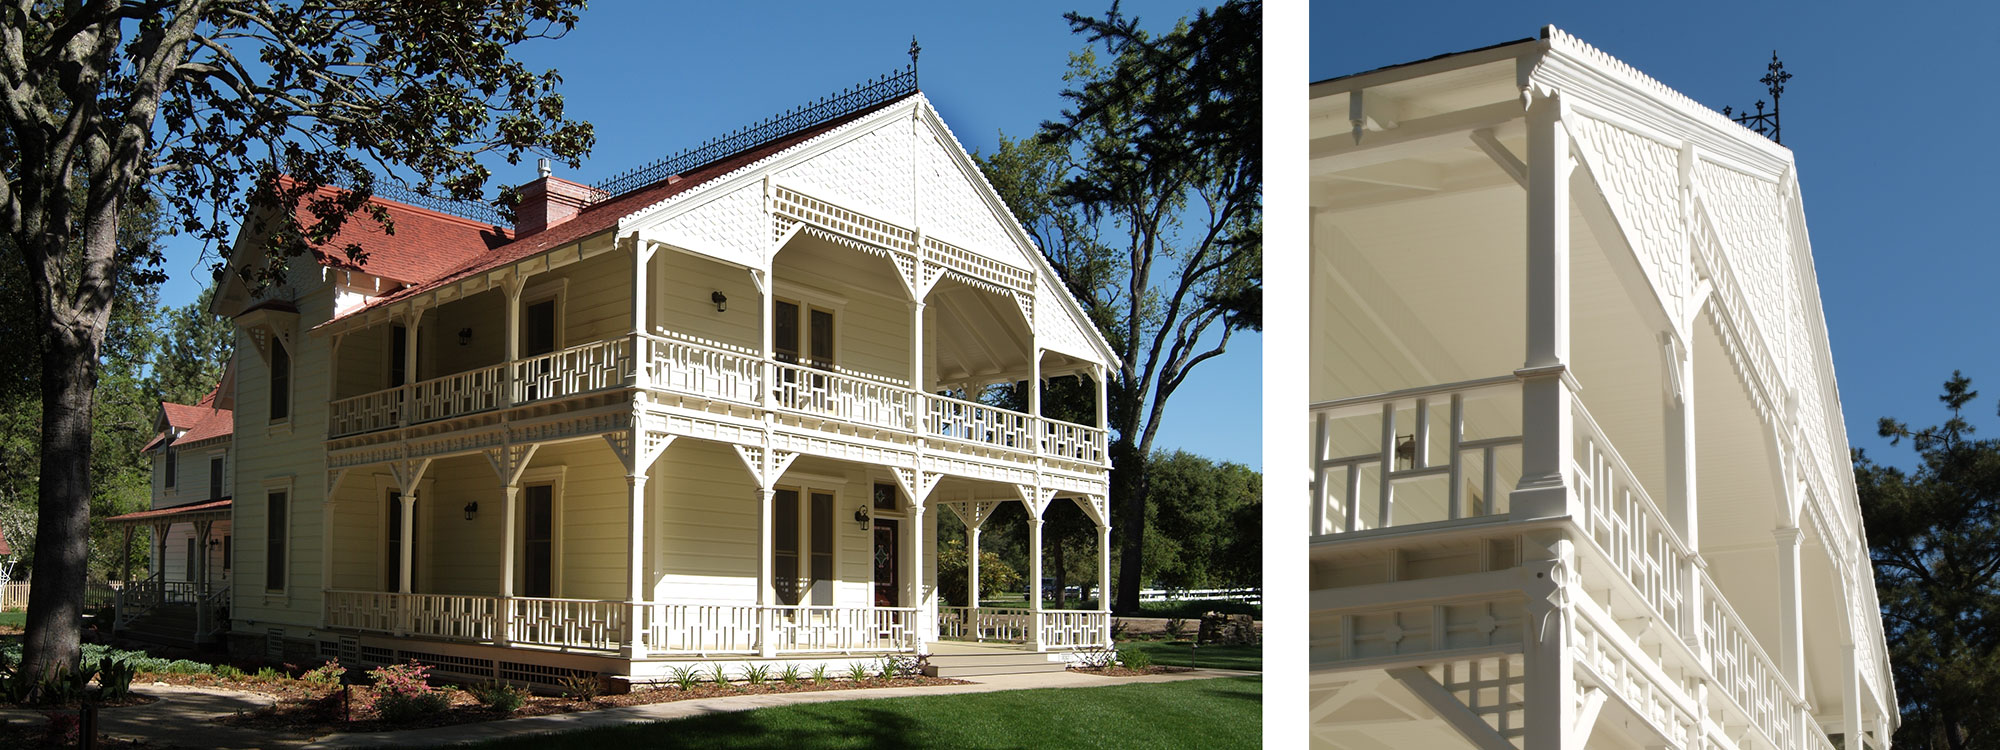 Victorian Home Restoration - Tasting Room Contractor - JW Design & Construction